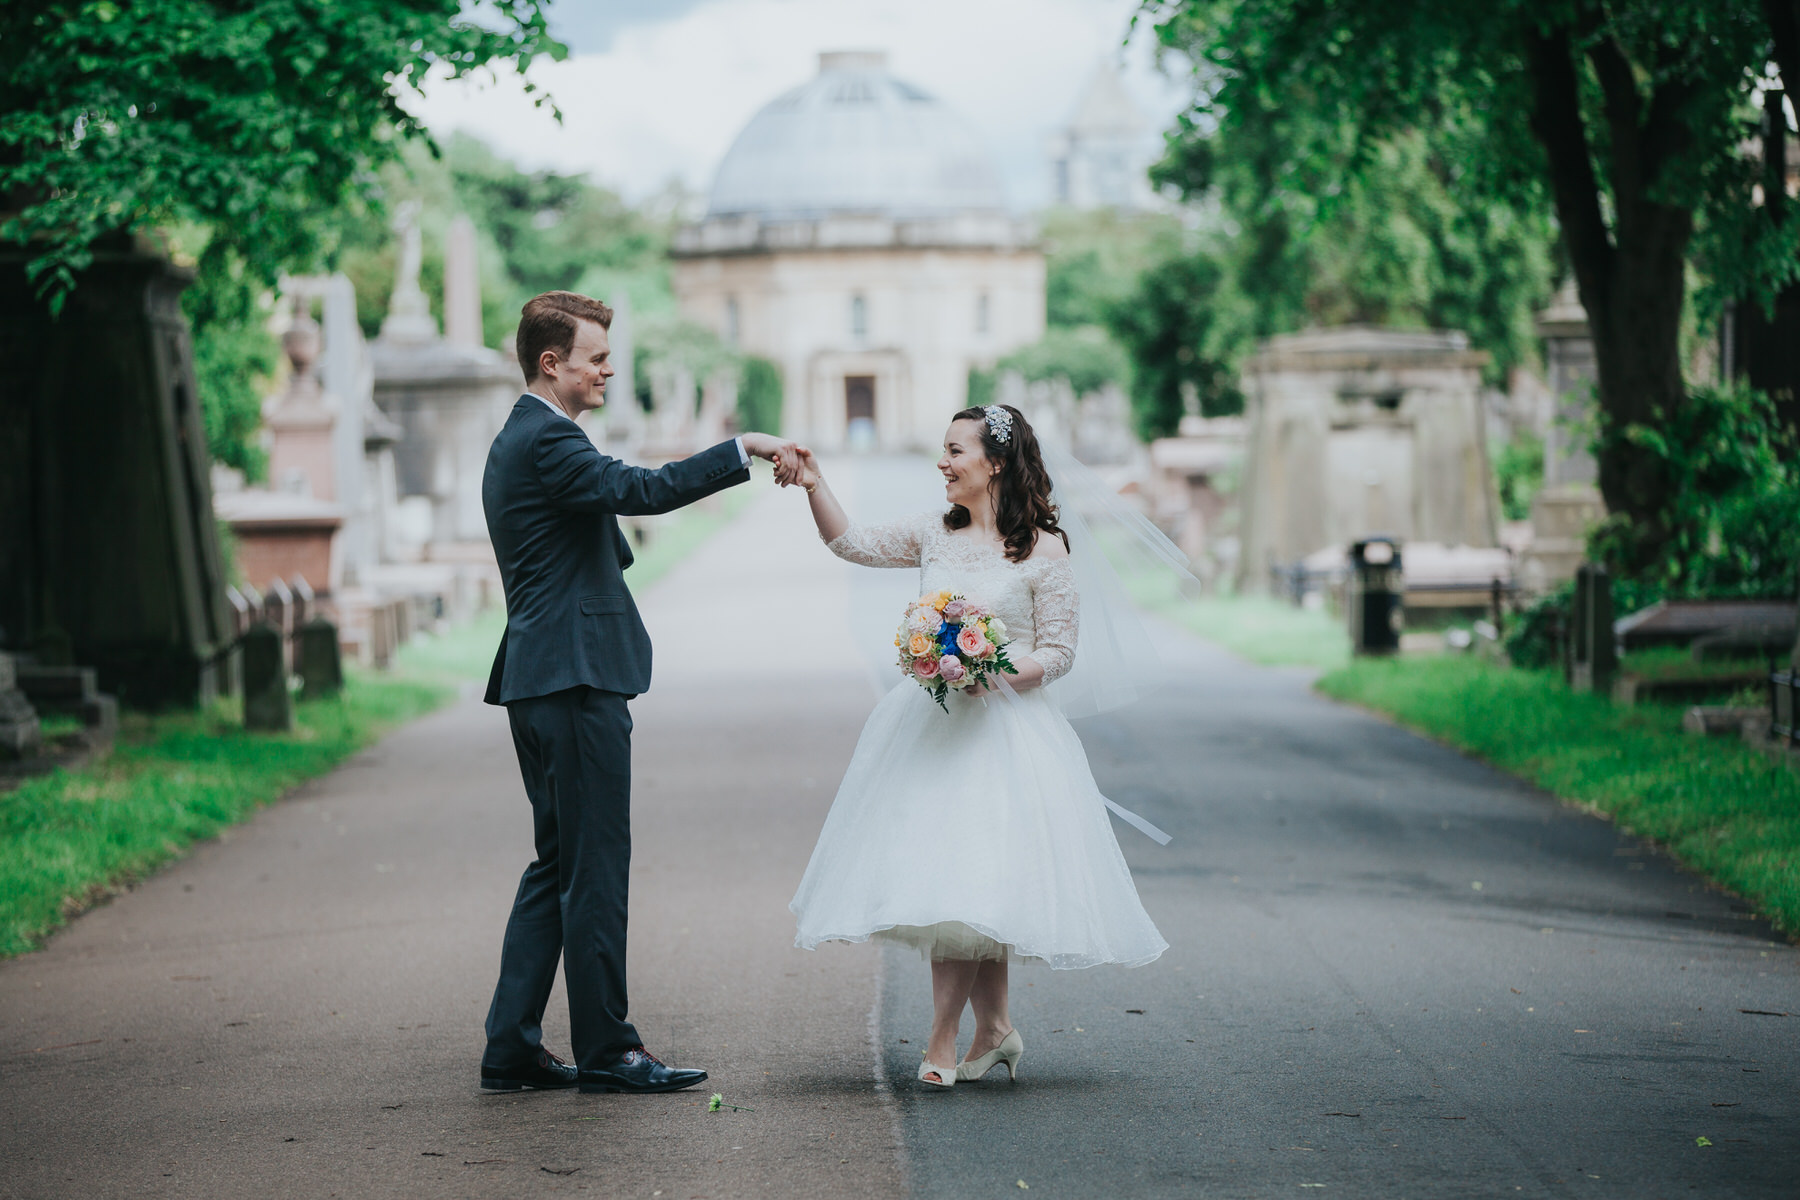 165 dancing groom bride Brompton Cemetery wedding photography.jpg